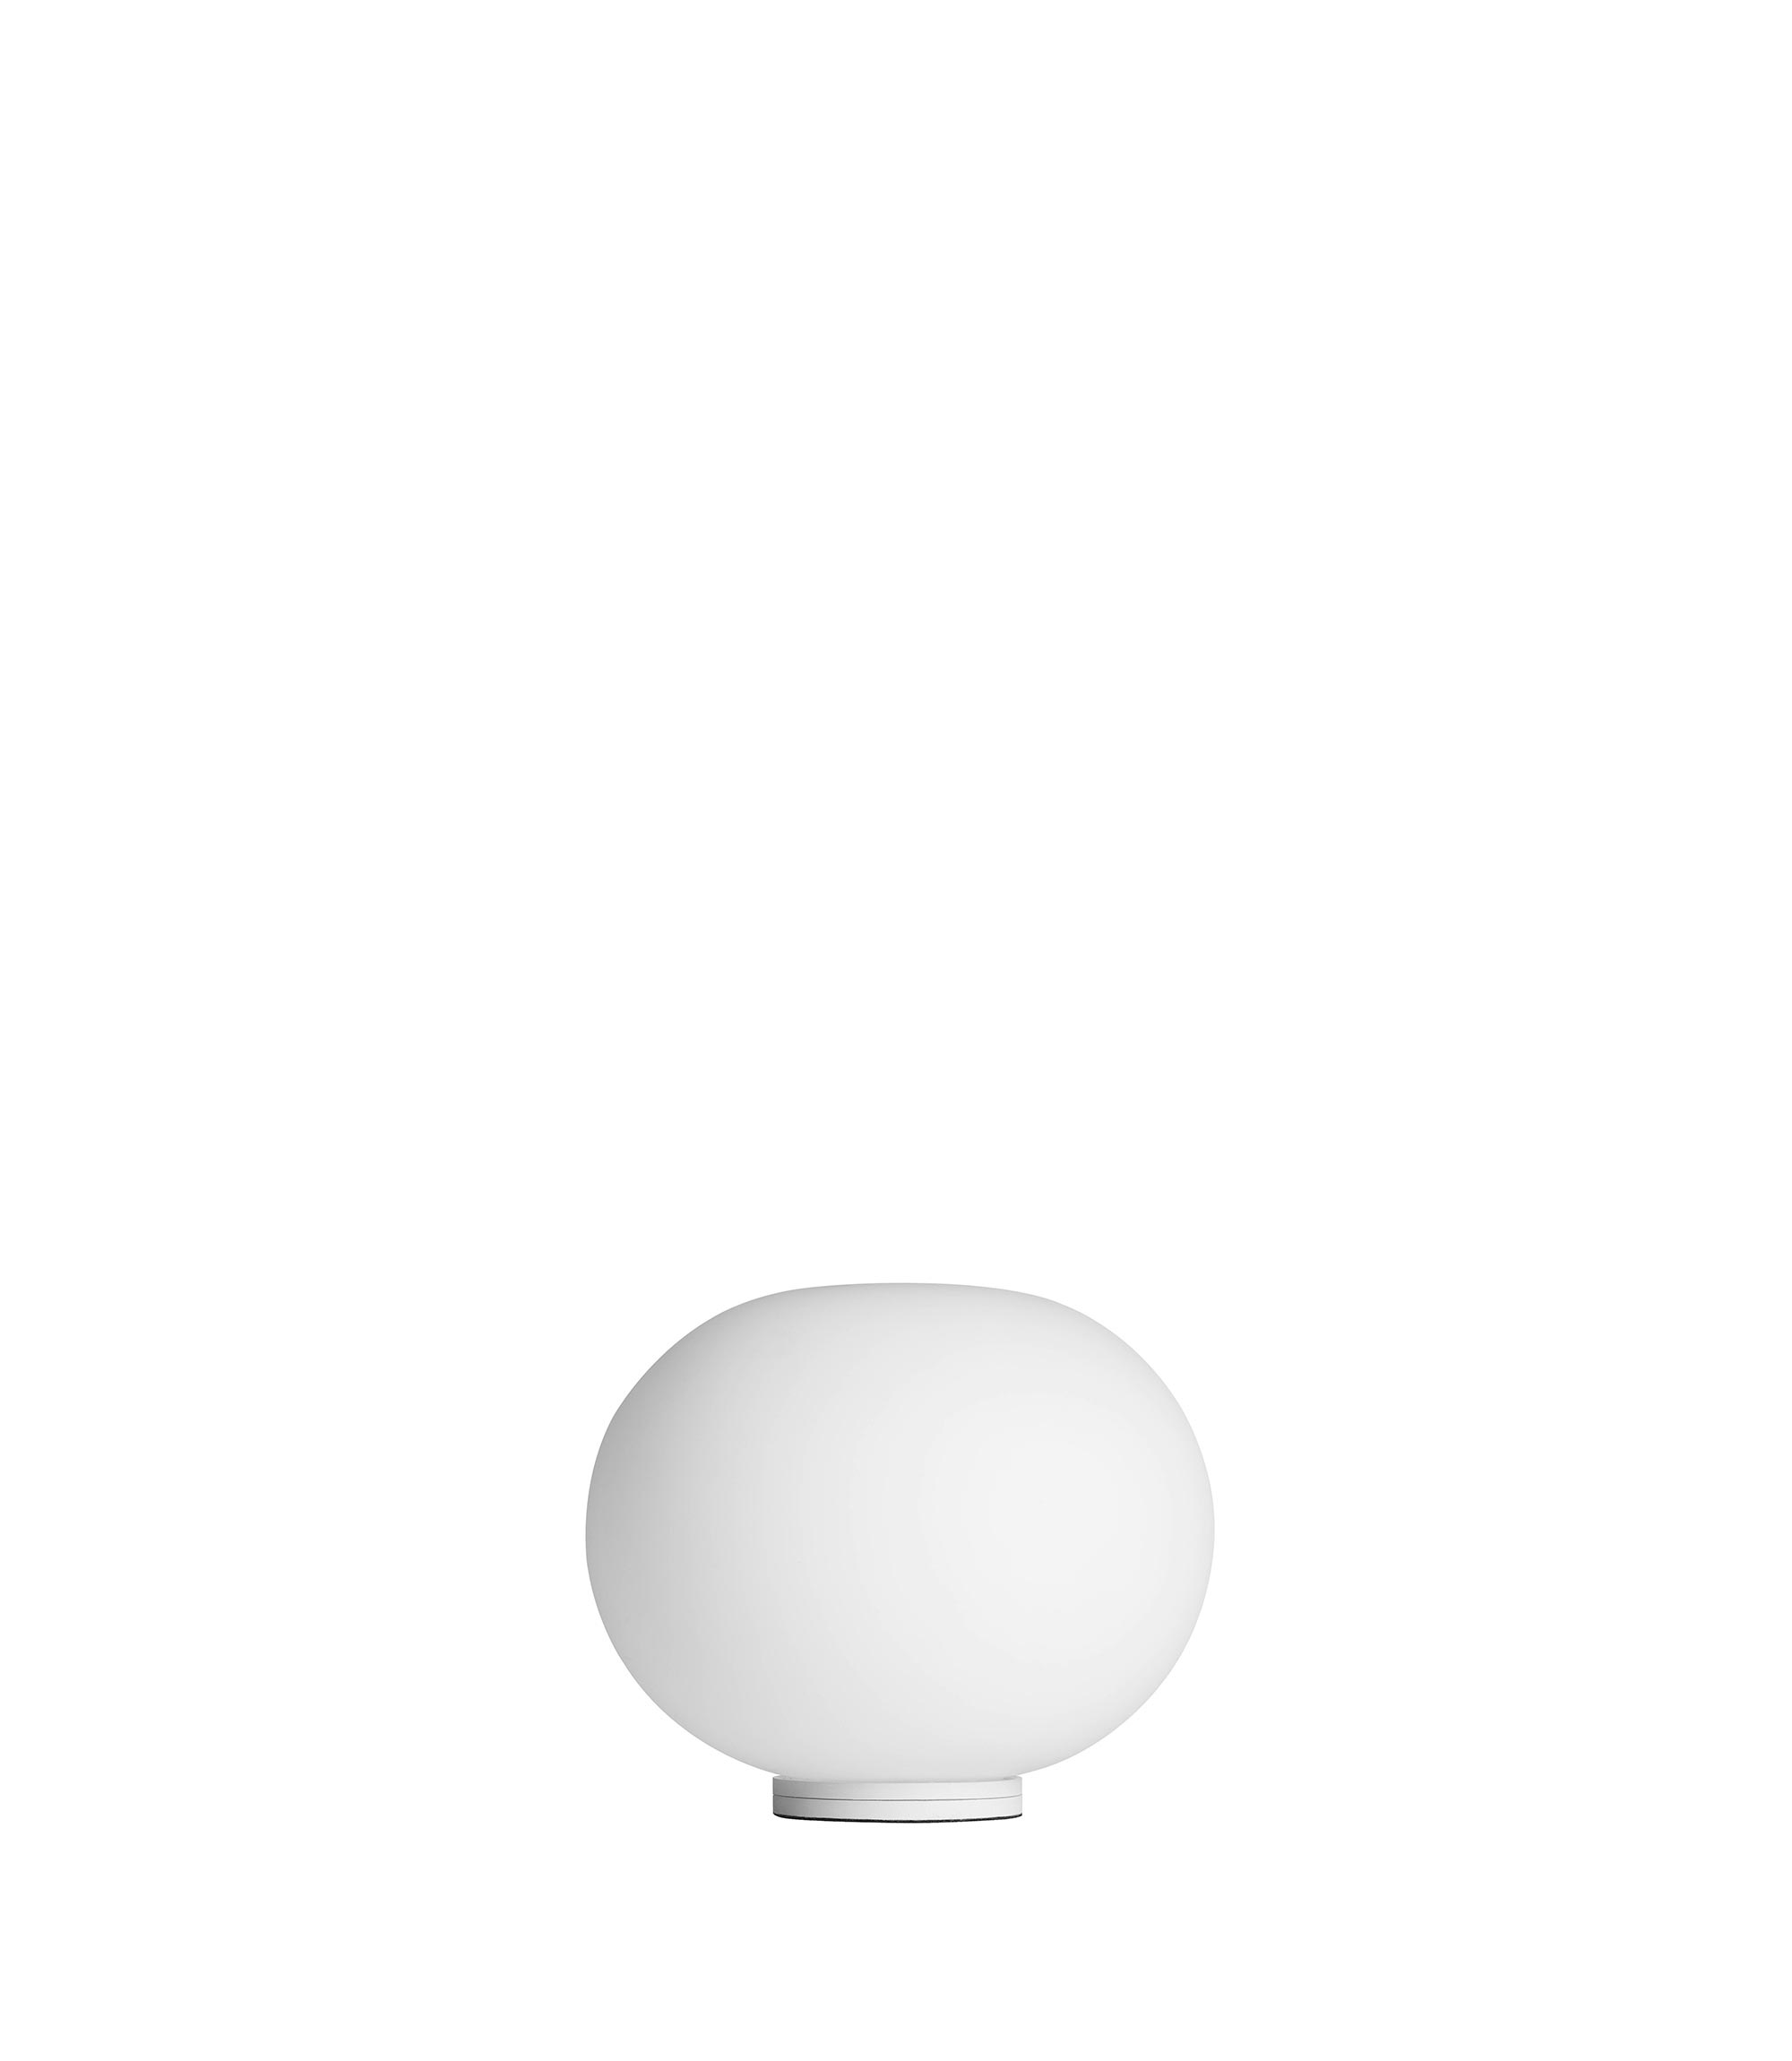 Glo ball basic table zero switch morrison flos F3331009 product still life big